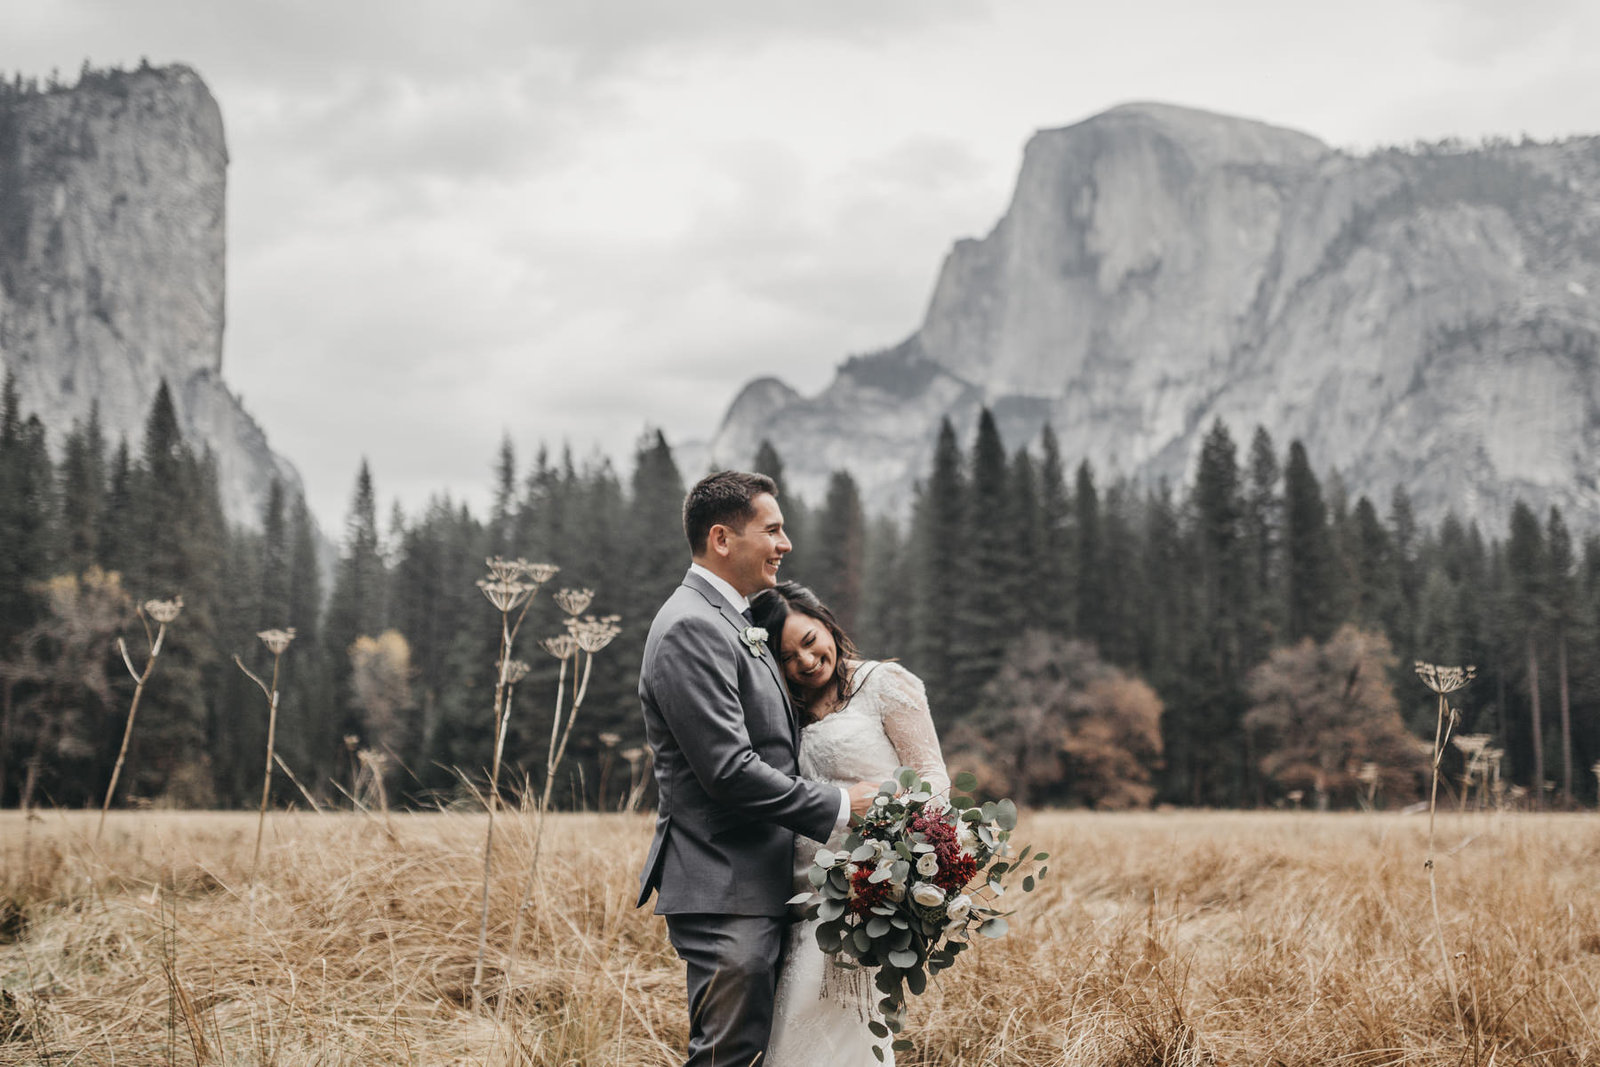 athena-and-camron-yosemite-elopement-wedding-photographer-elegent-valley-wedding48-laughing-cute-couple-goals-half-dome